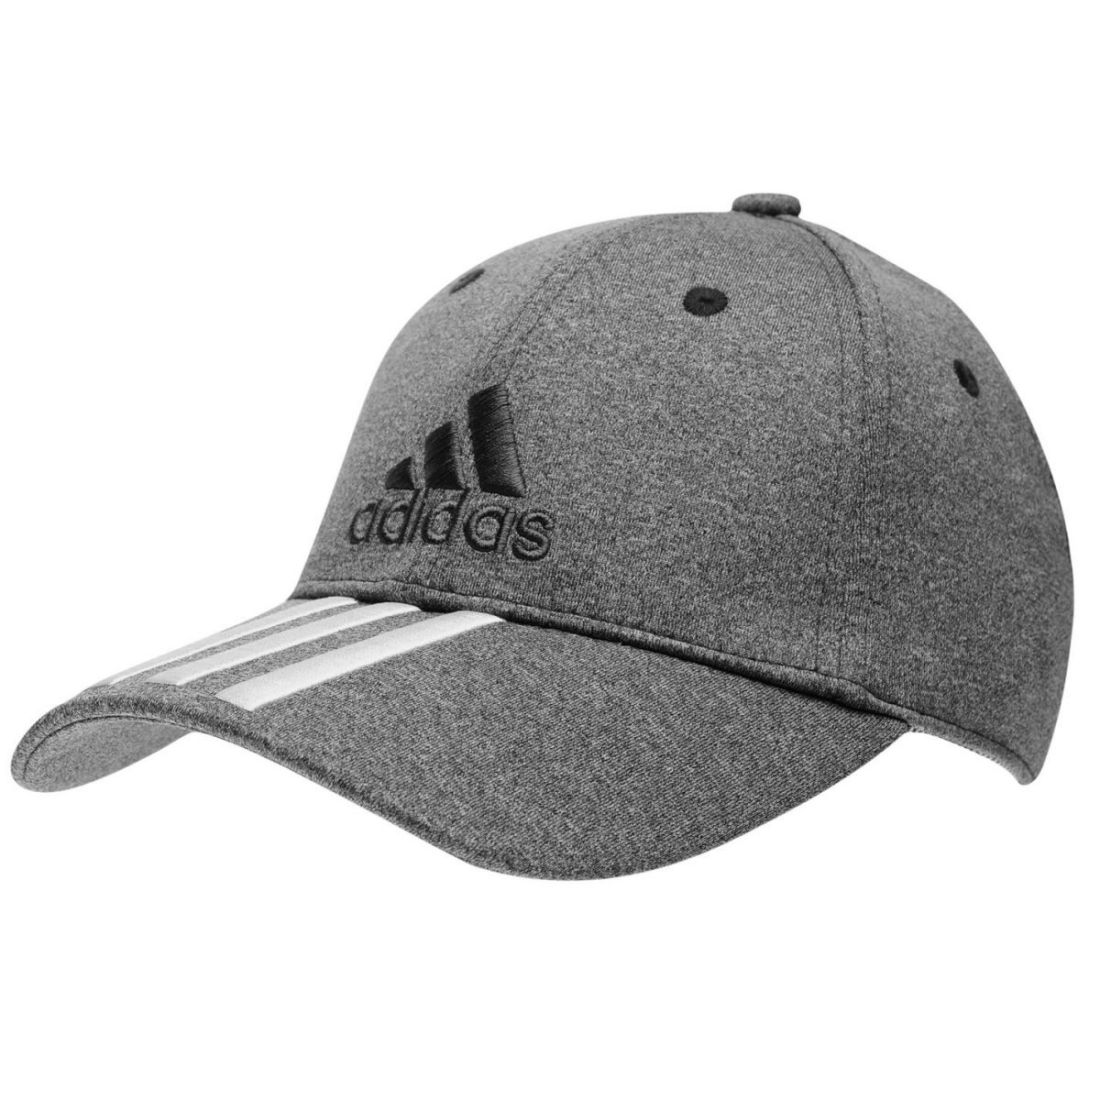 1ea14296543e15 Image is loading adidas-Perf-3s-Cap-Youngster-Childrens-Baseball